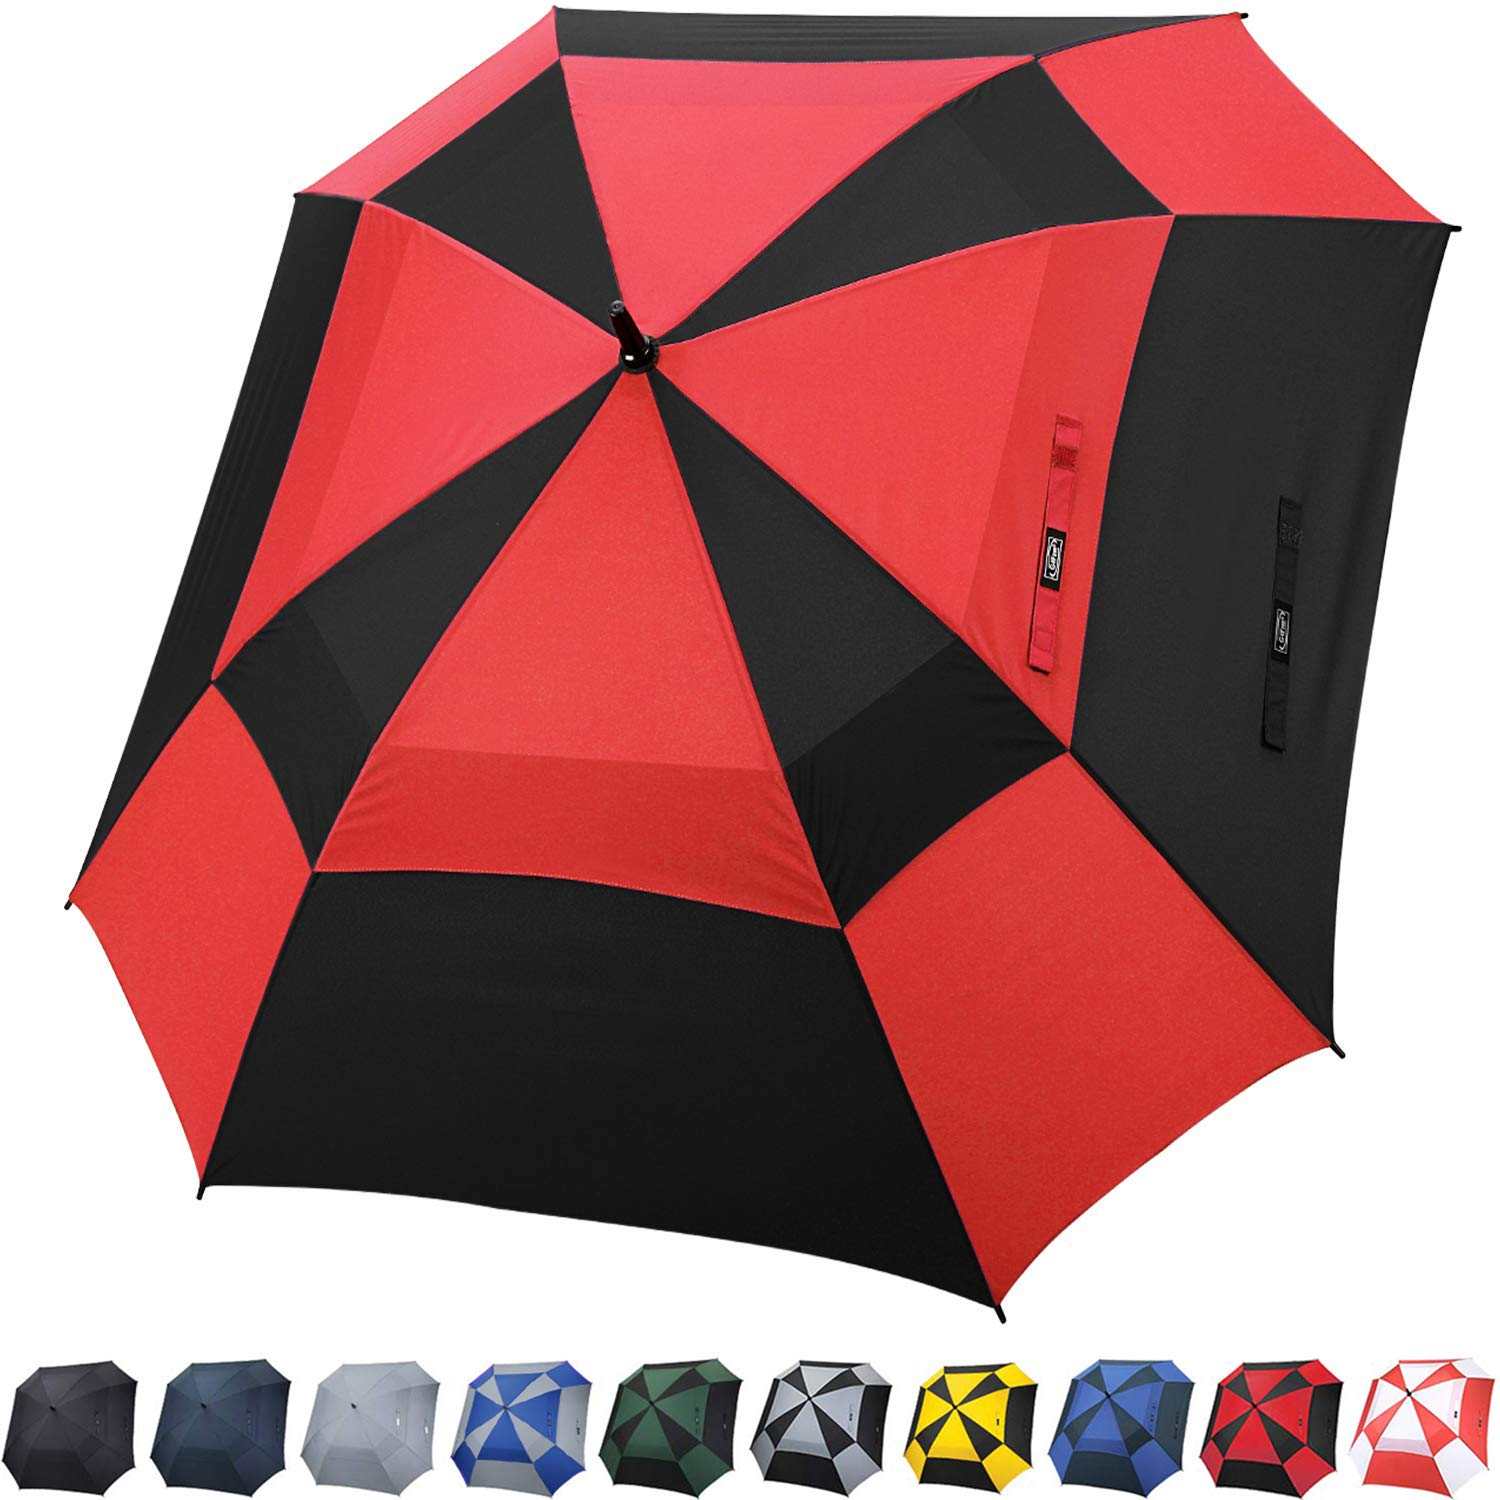 G4Free Extra Large Golf Umbrella Double Canopy Vented Square Umbrella Windproof Automatic Open 62 Inch Oversize Stick Umbrella for Men Women(Black/Red) by G4Free